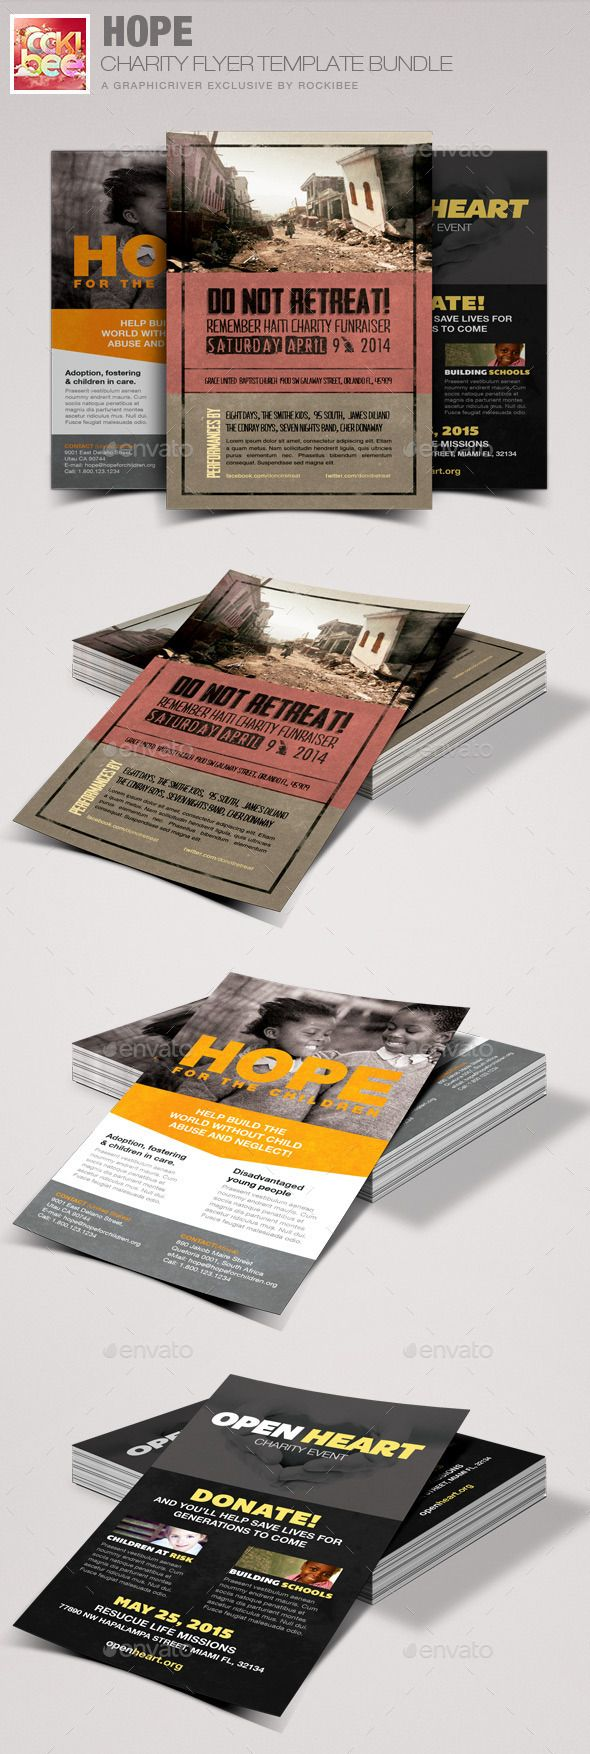 Hope Charity Flyer Template Bundle